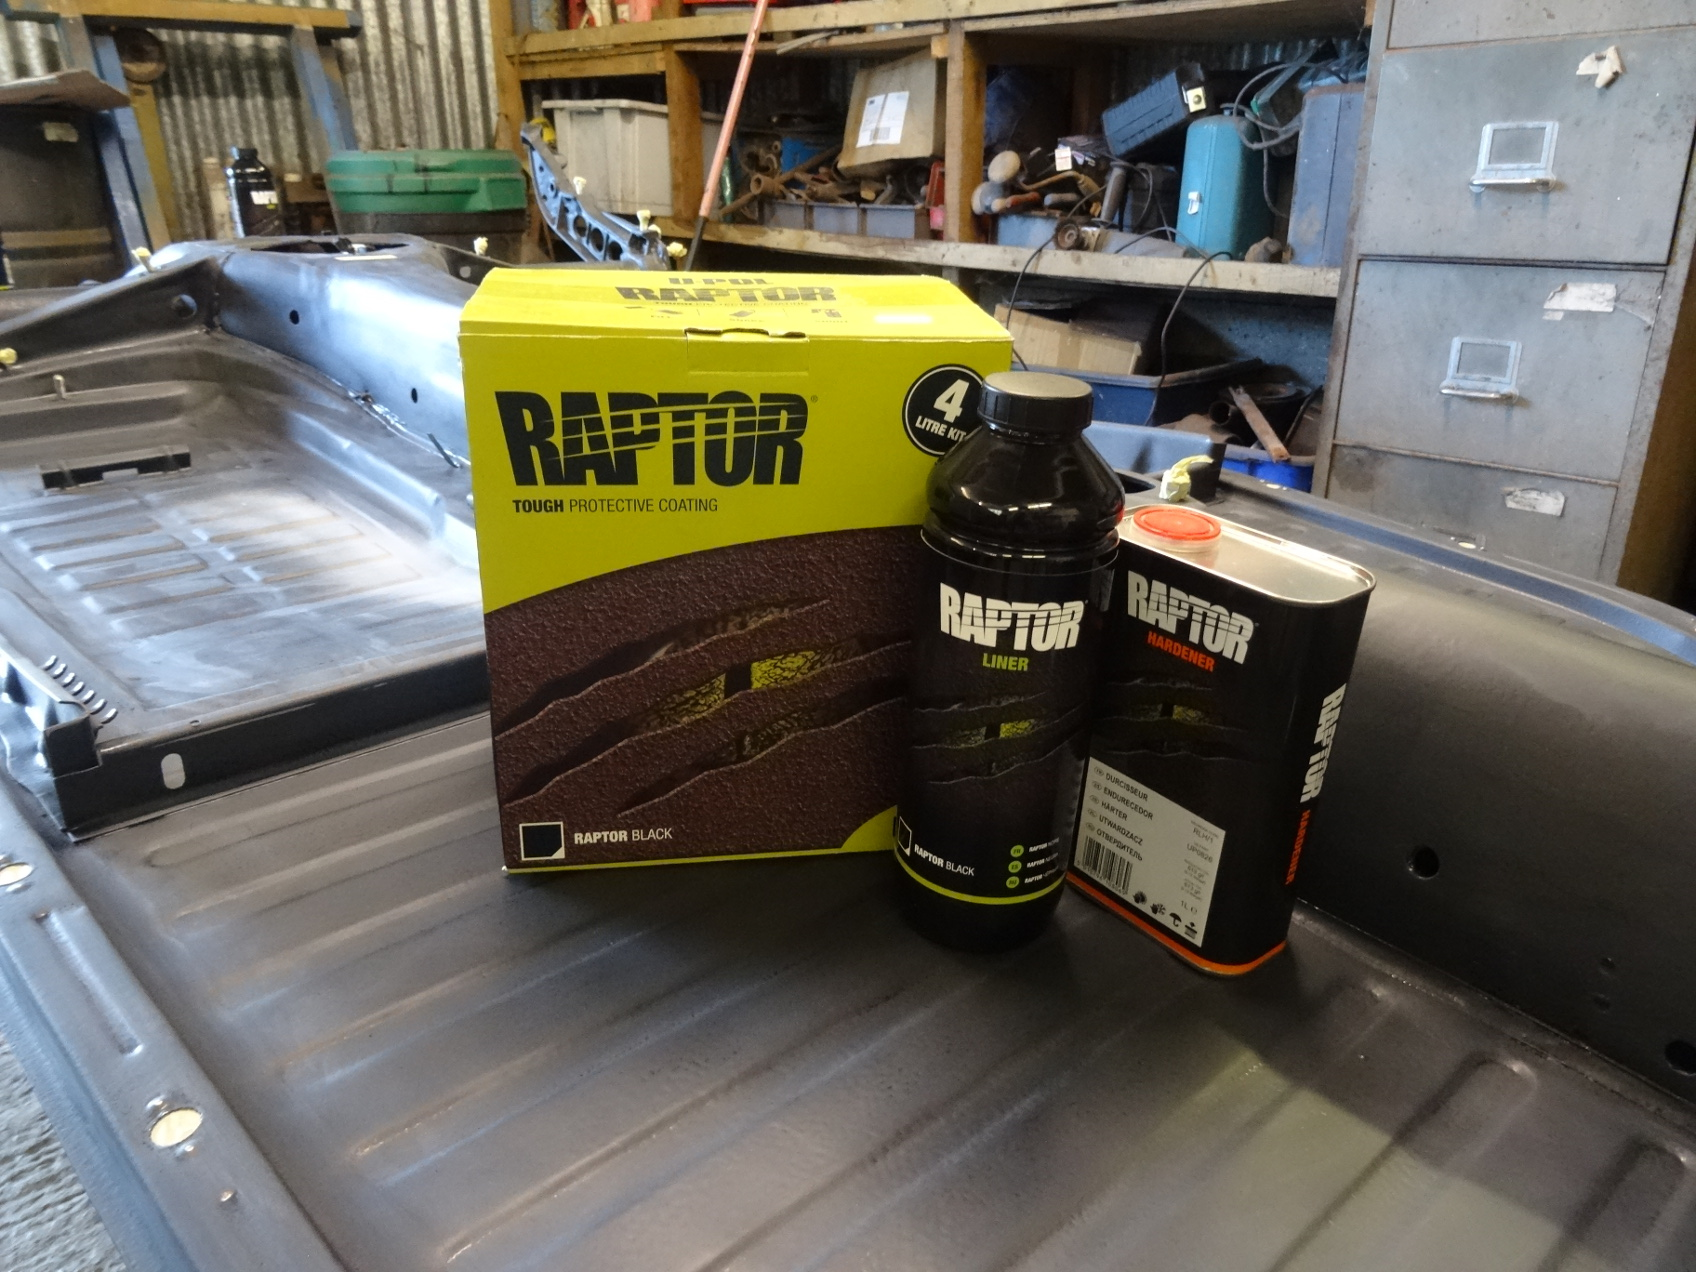 Raptor rust proofing products